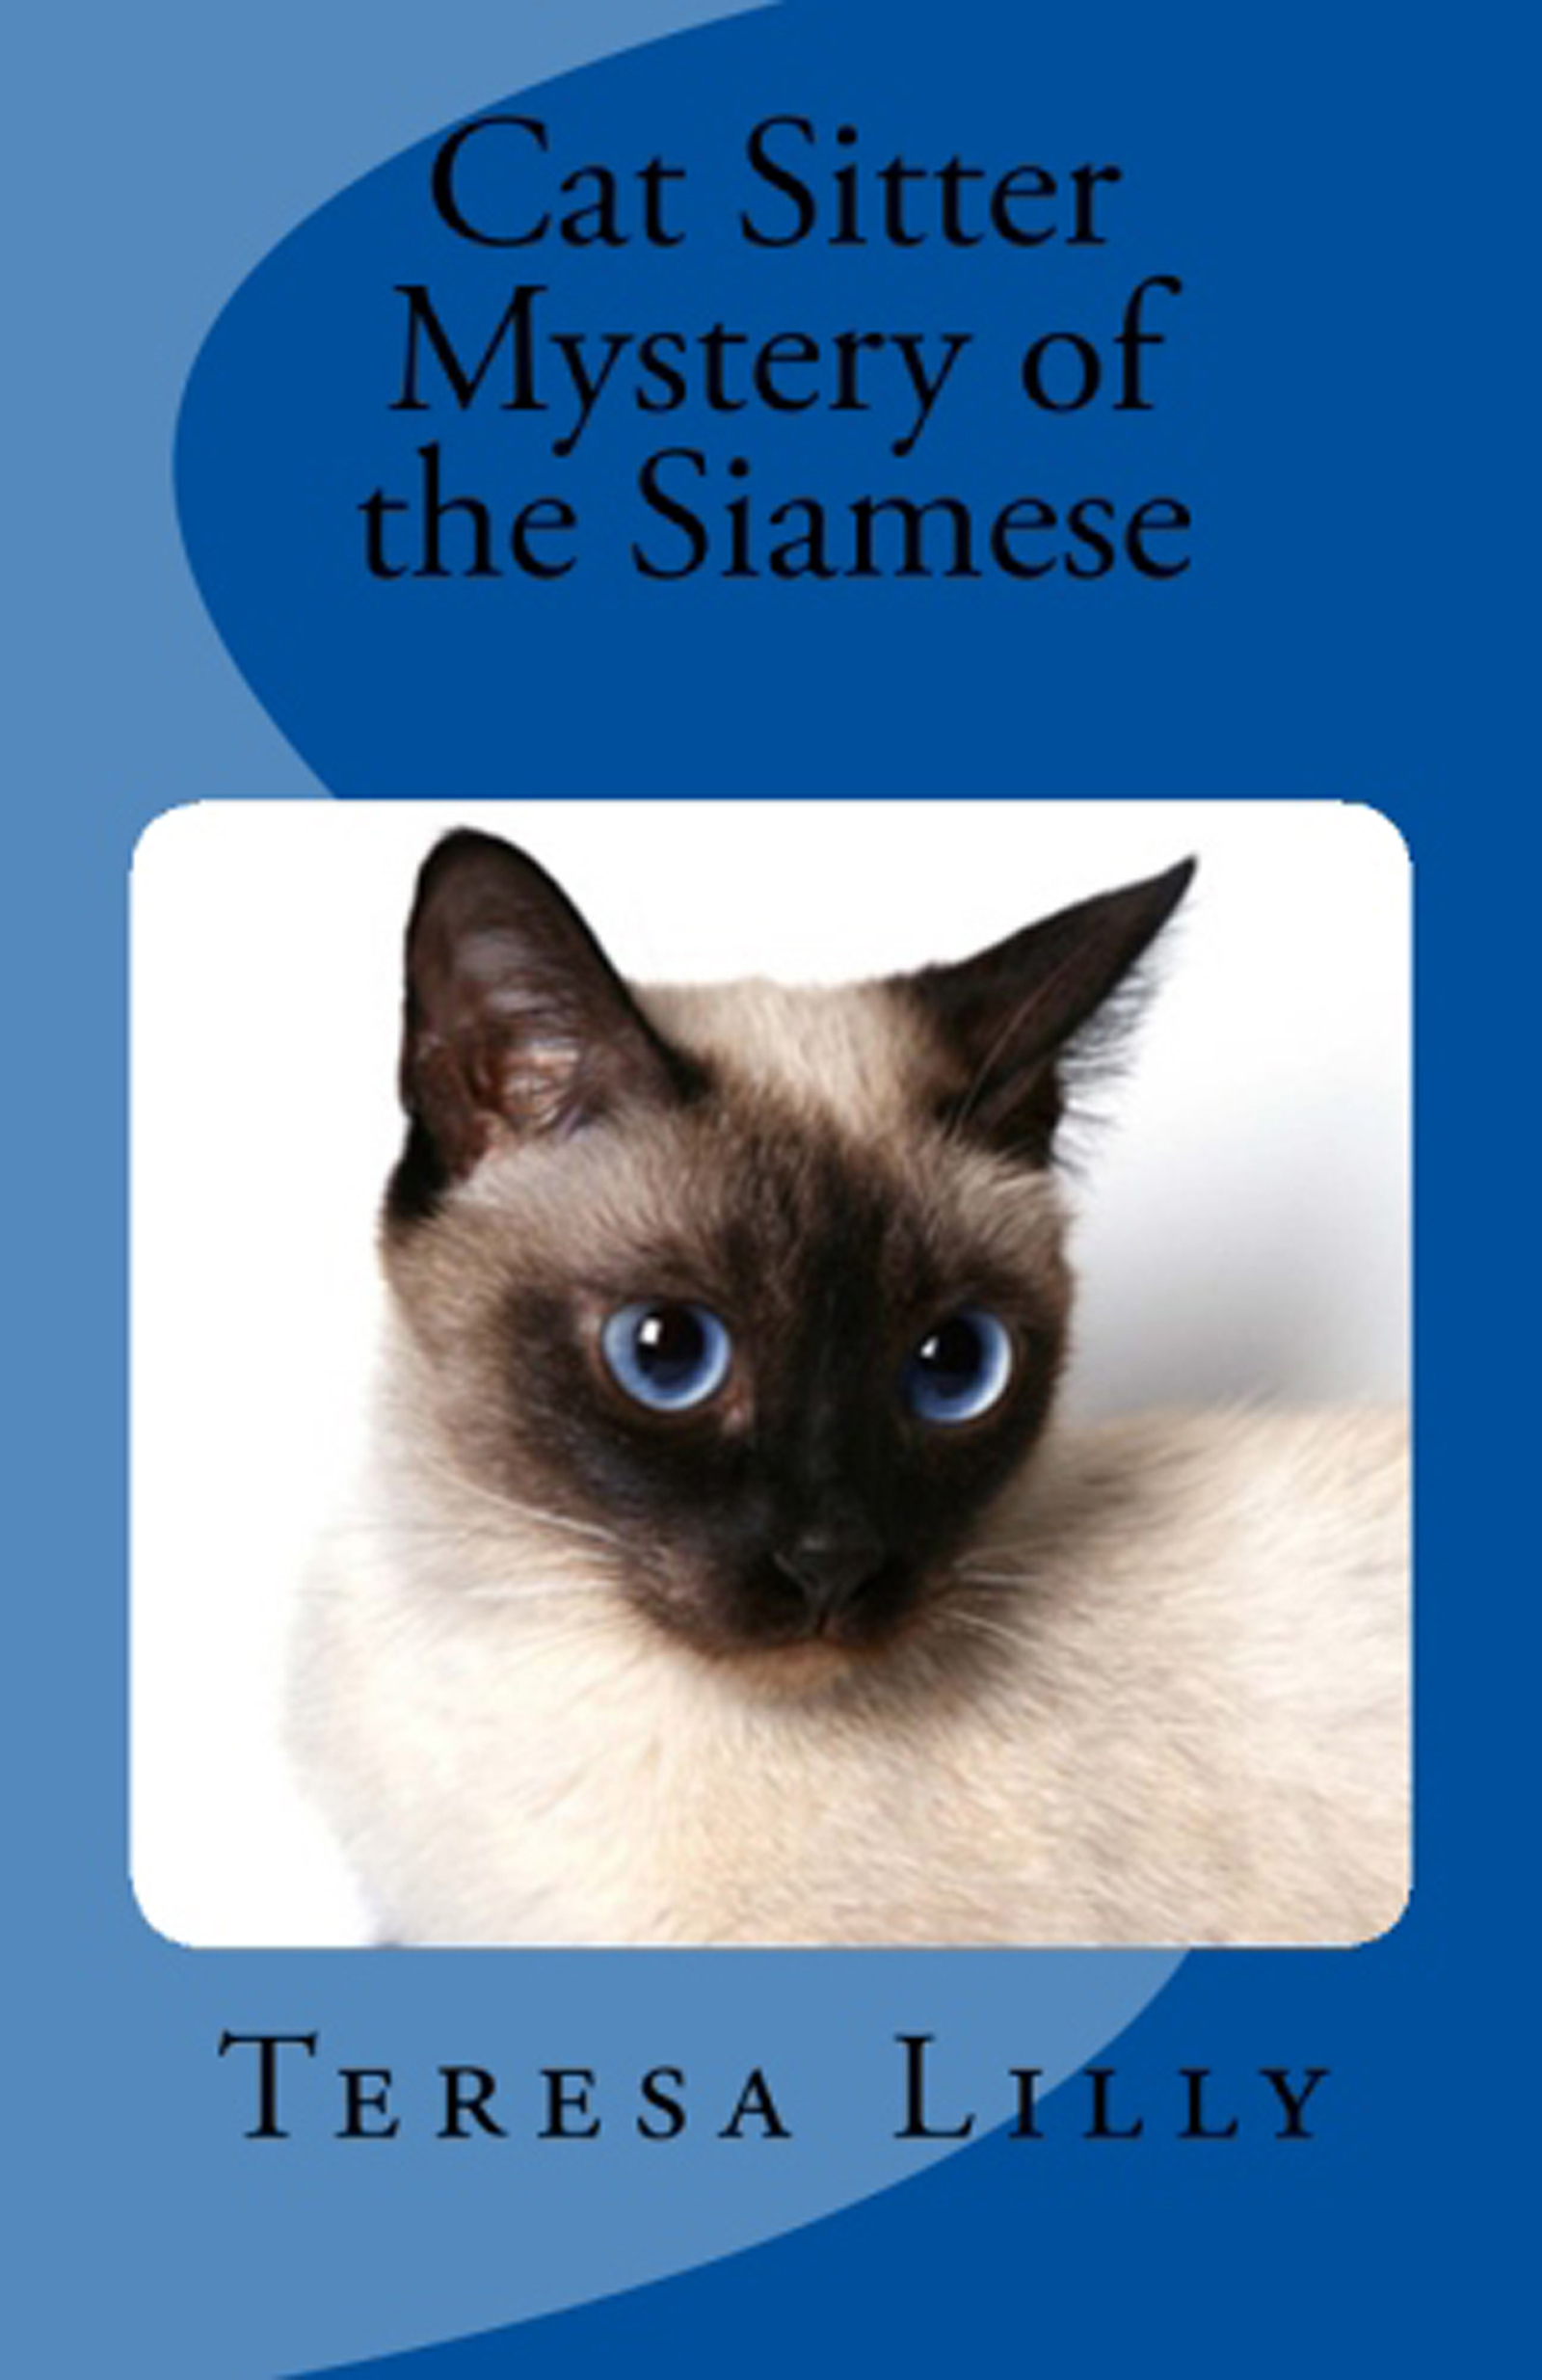 Cat Sitter Mystery of the Siamese